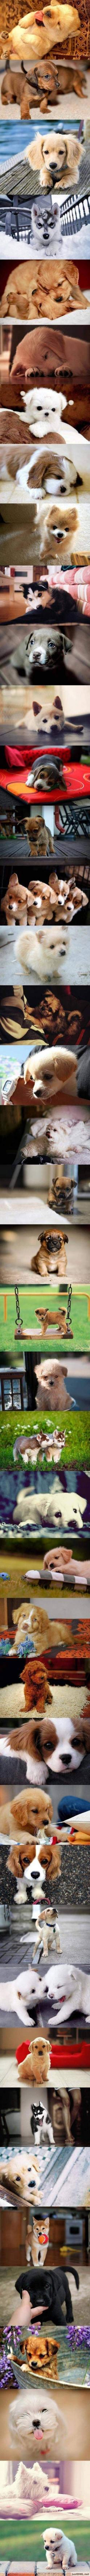 PUPPIES!!!!! OMG I THINK I JUST DIED: Doggie, Cute Puppies, Cuteness Overload, Animals, Pet, Puppys, Puppies 3